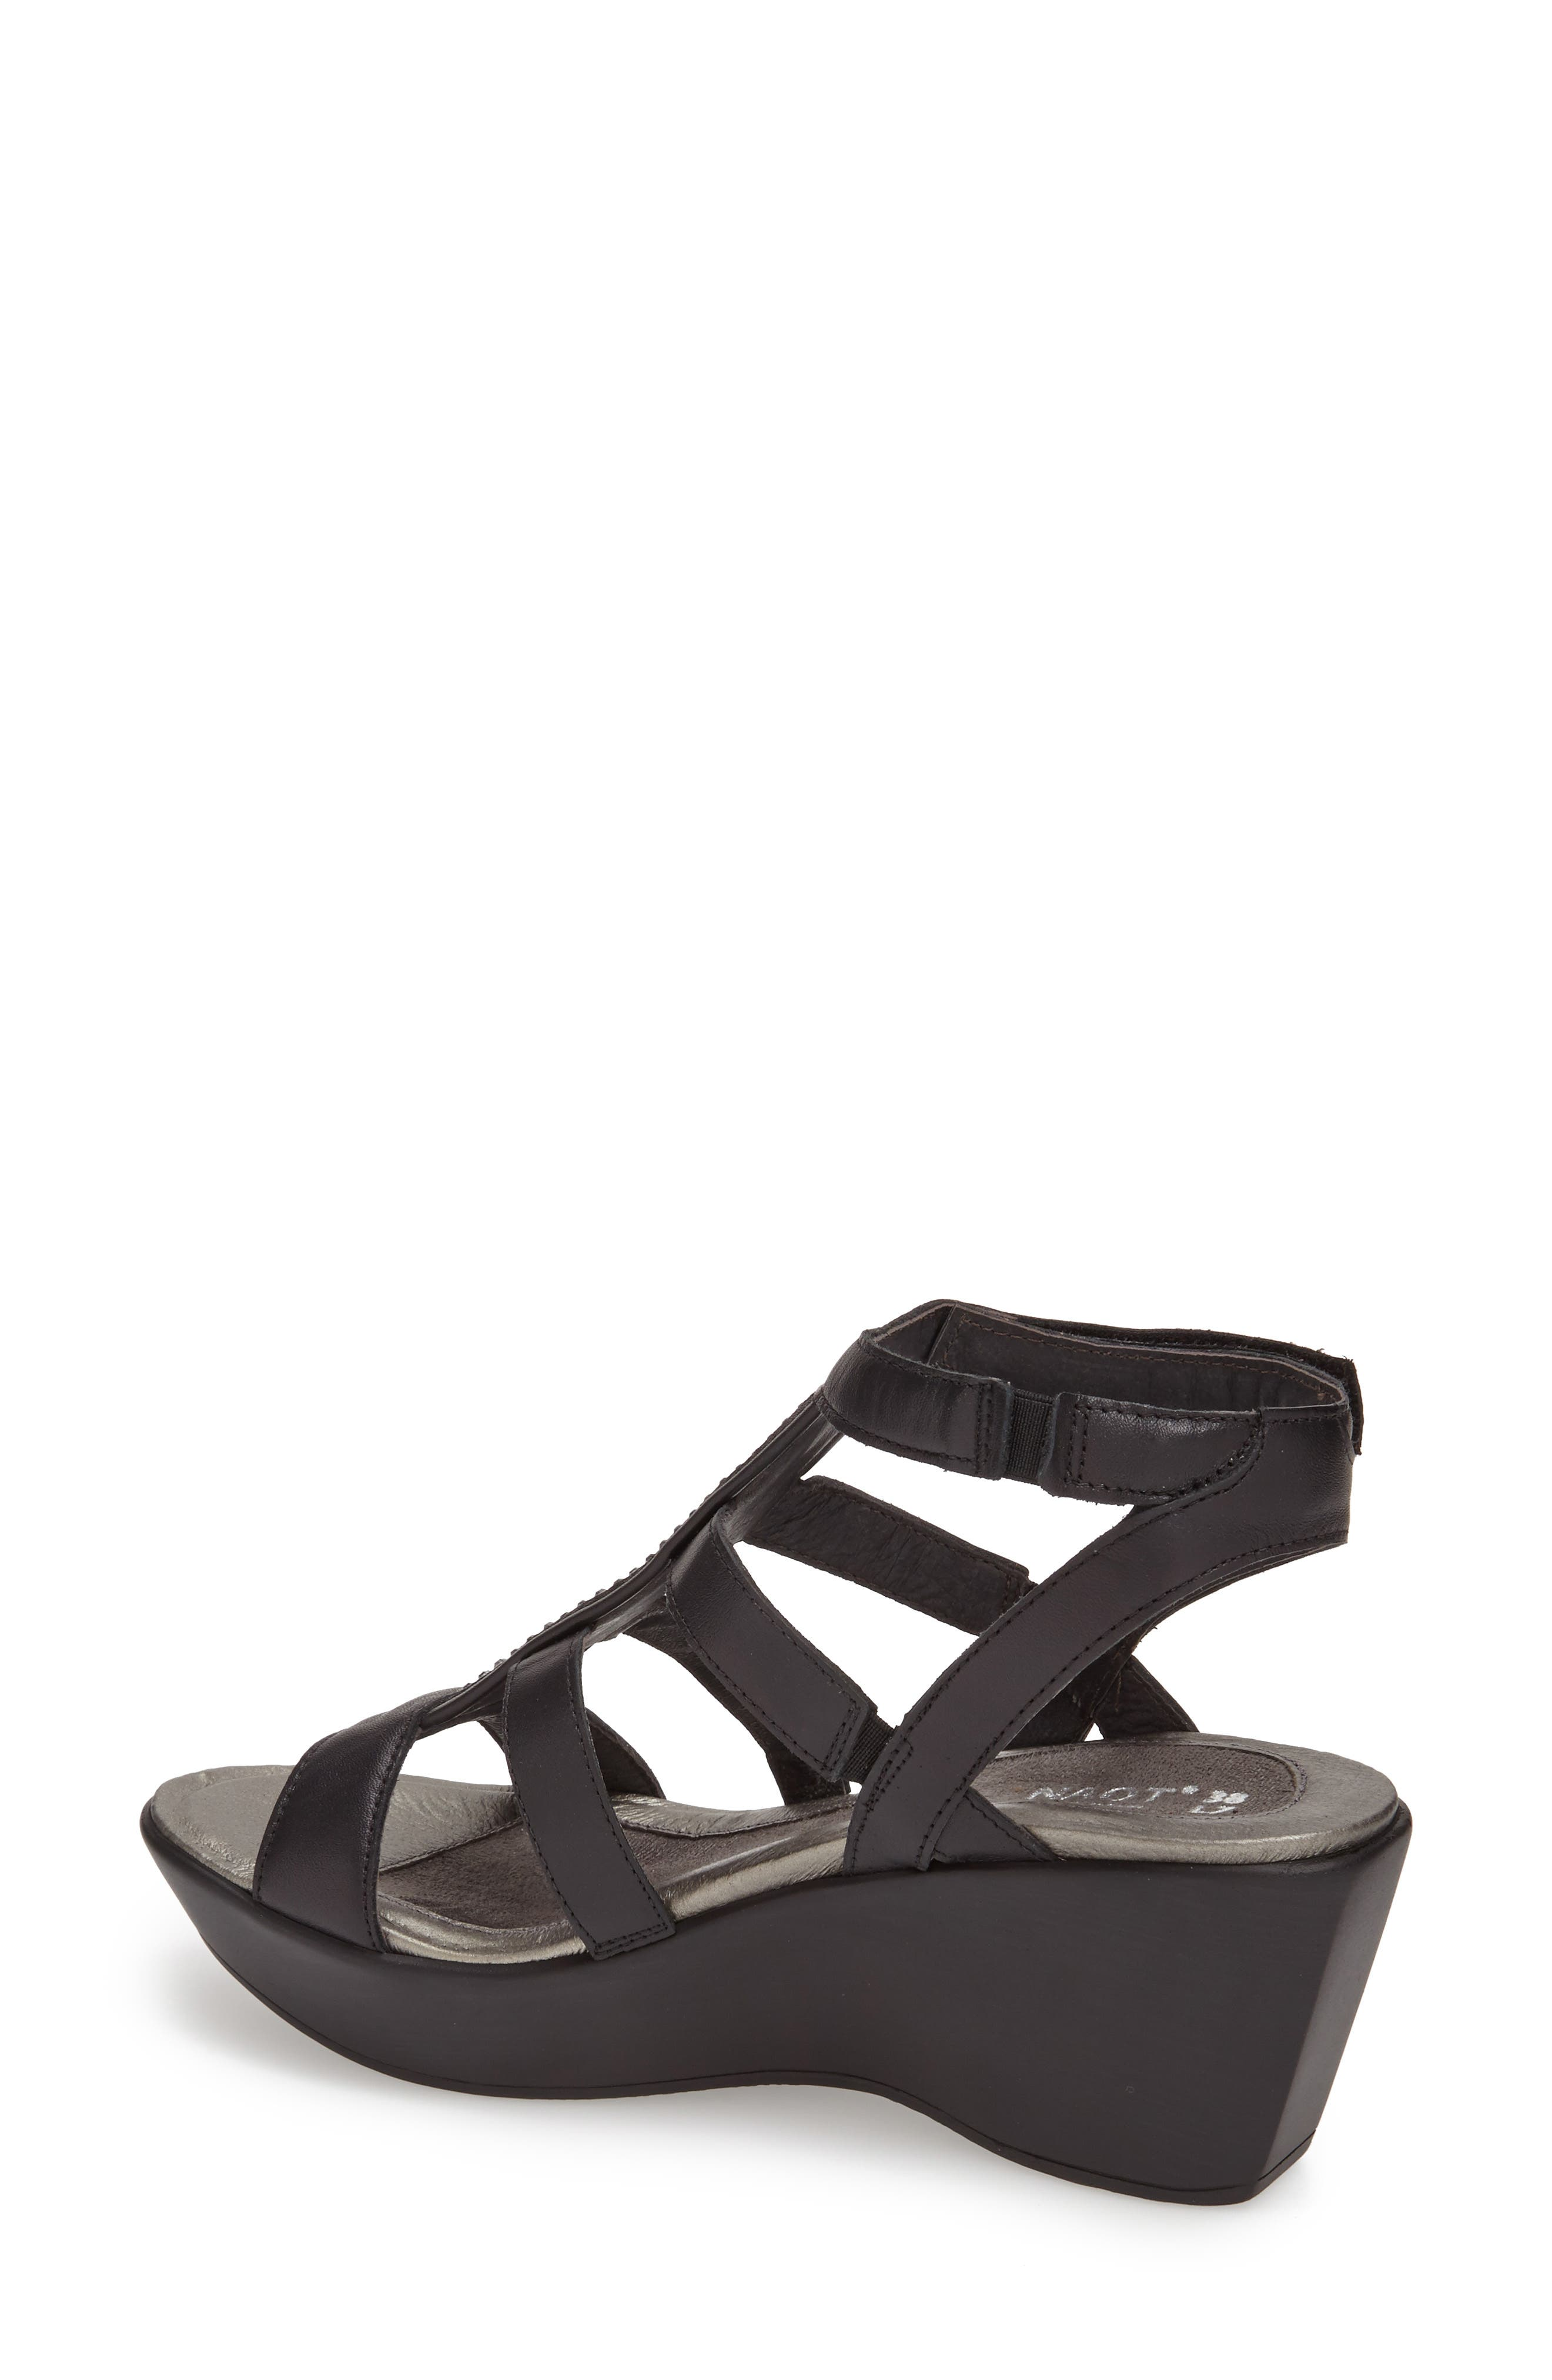 'Mystery' Platform Wedge Sandal,                             Alternate thumbnail 8, color,